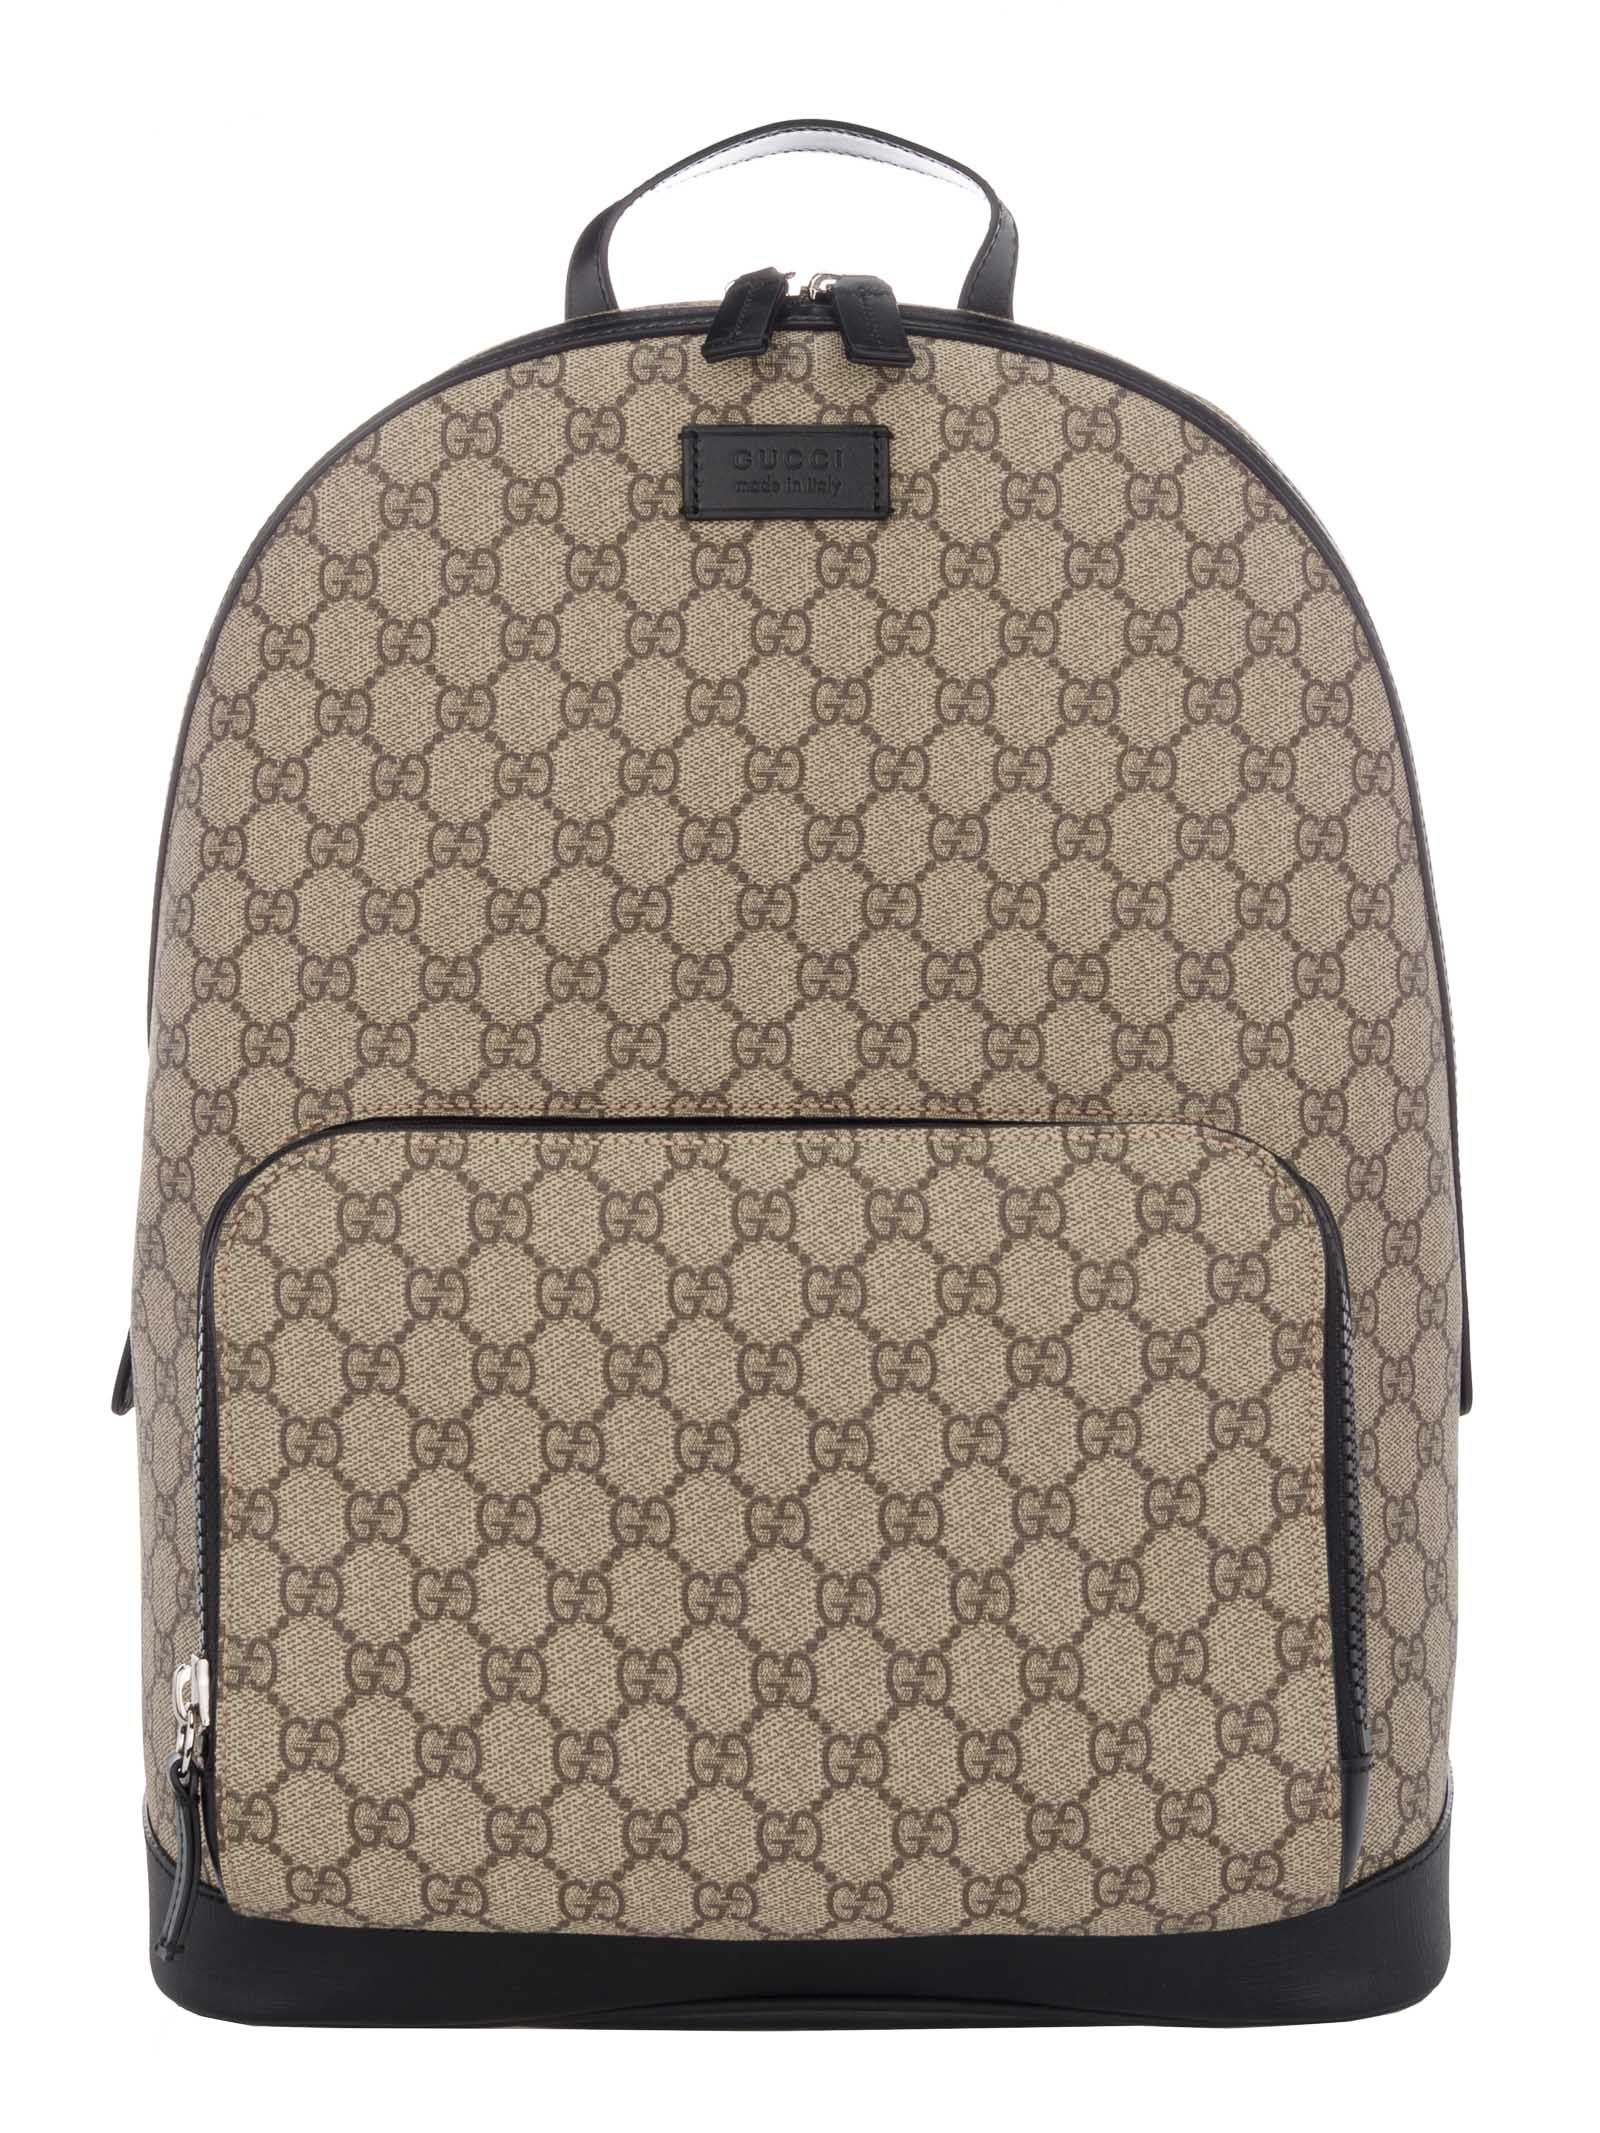 9b0bfe60e4d GUCCI BACKPACK GG SUPREME.  gucci  bags  leather  canvas  nylon